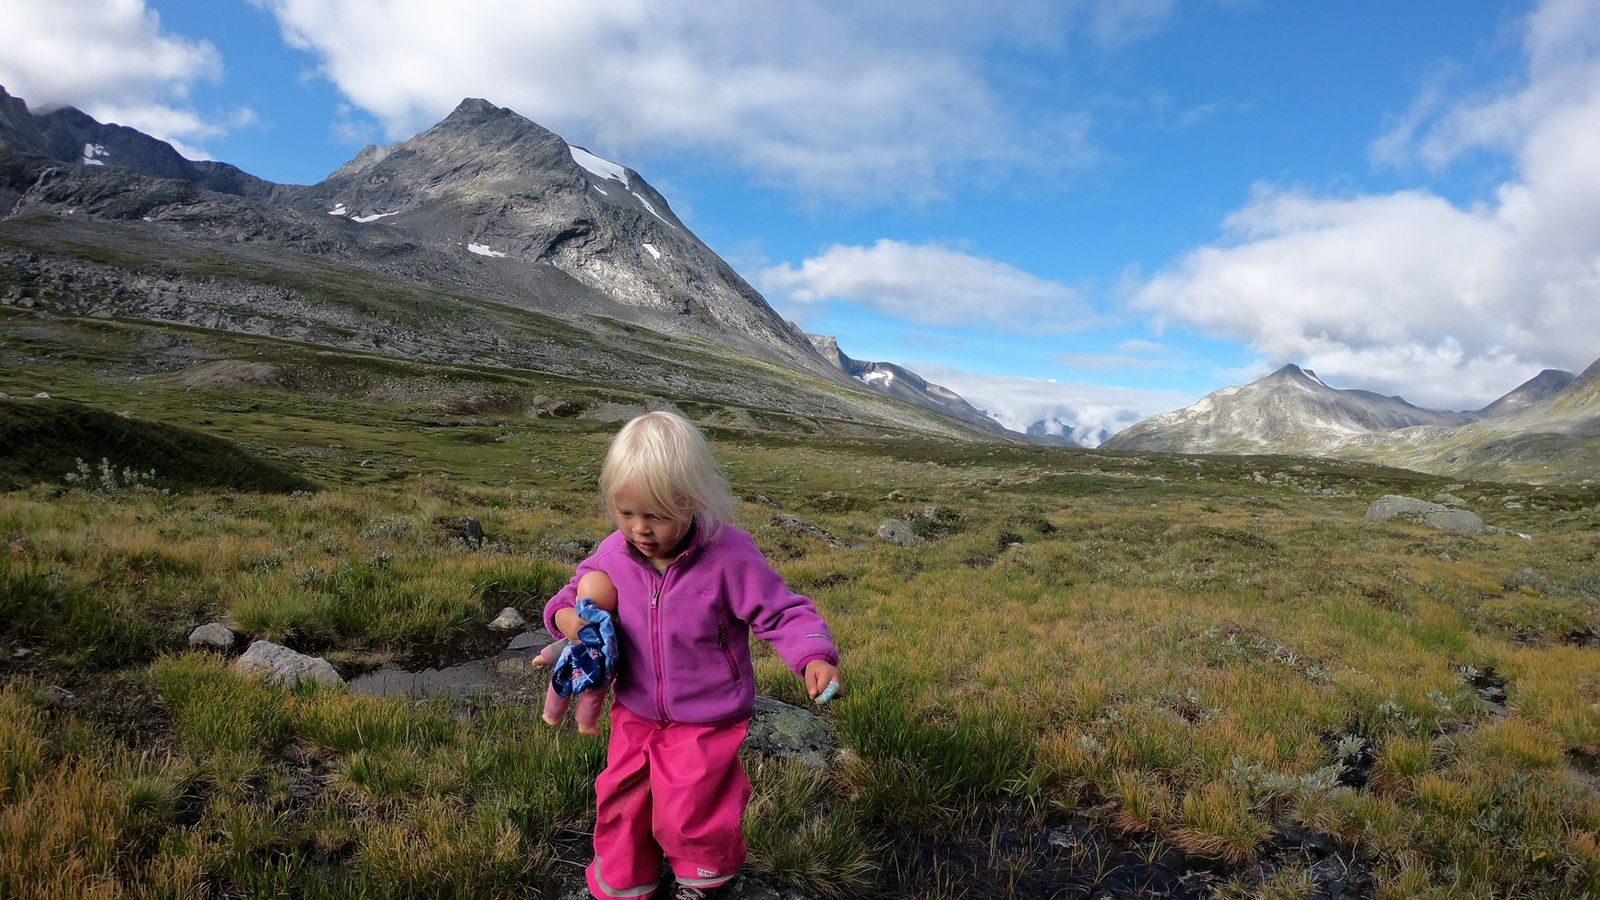 The concept of friluftsliv, or open-air living, encourages outdoor adventures for all ages in all weather. ...